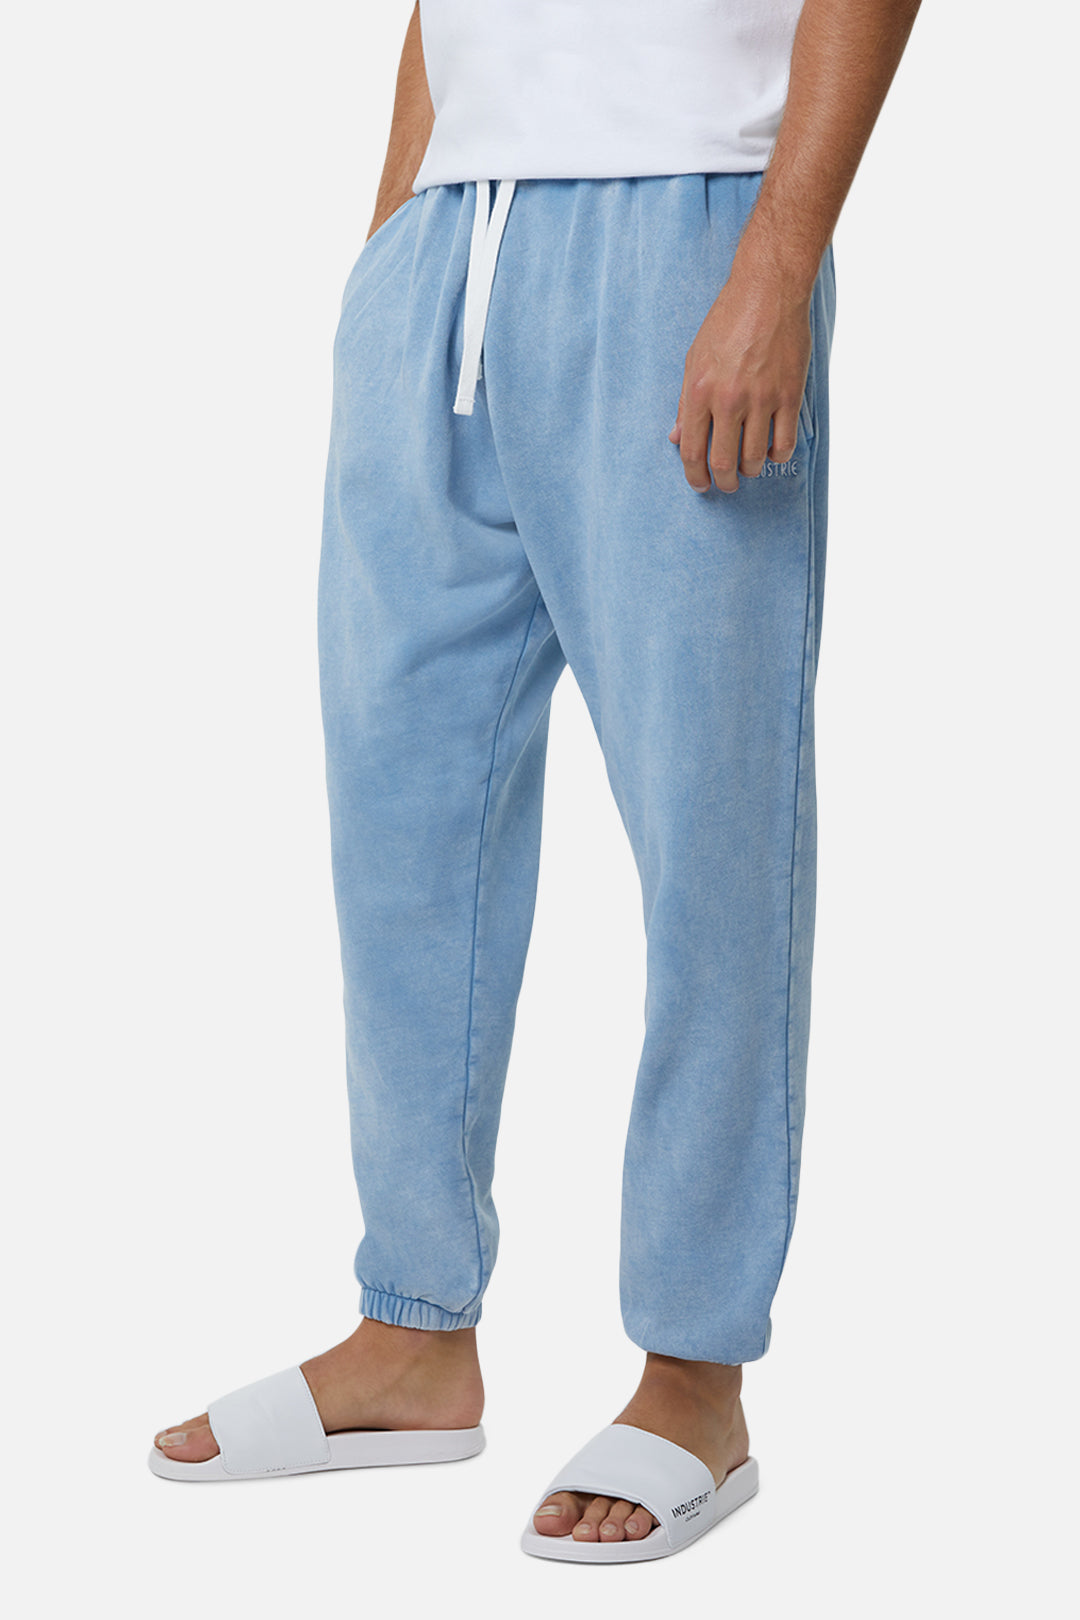 The Del Sur Track Pant - Odbluacid